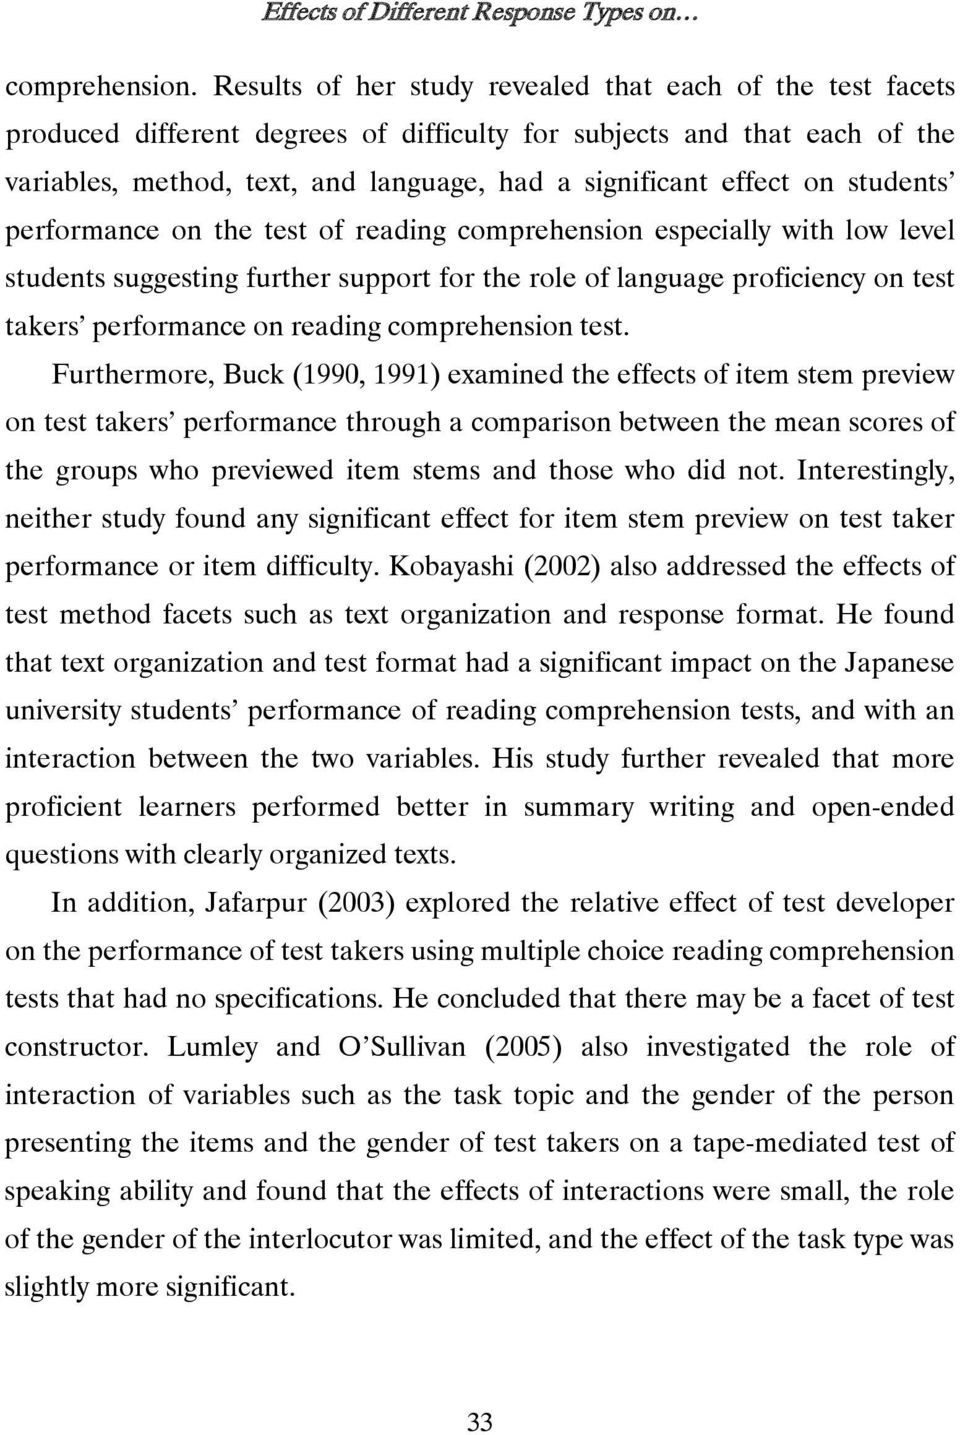 on students performance on the test of reading comprehension especially with low level students suggesting further support for the role of language proficiency on test takers performance on reading